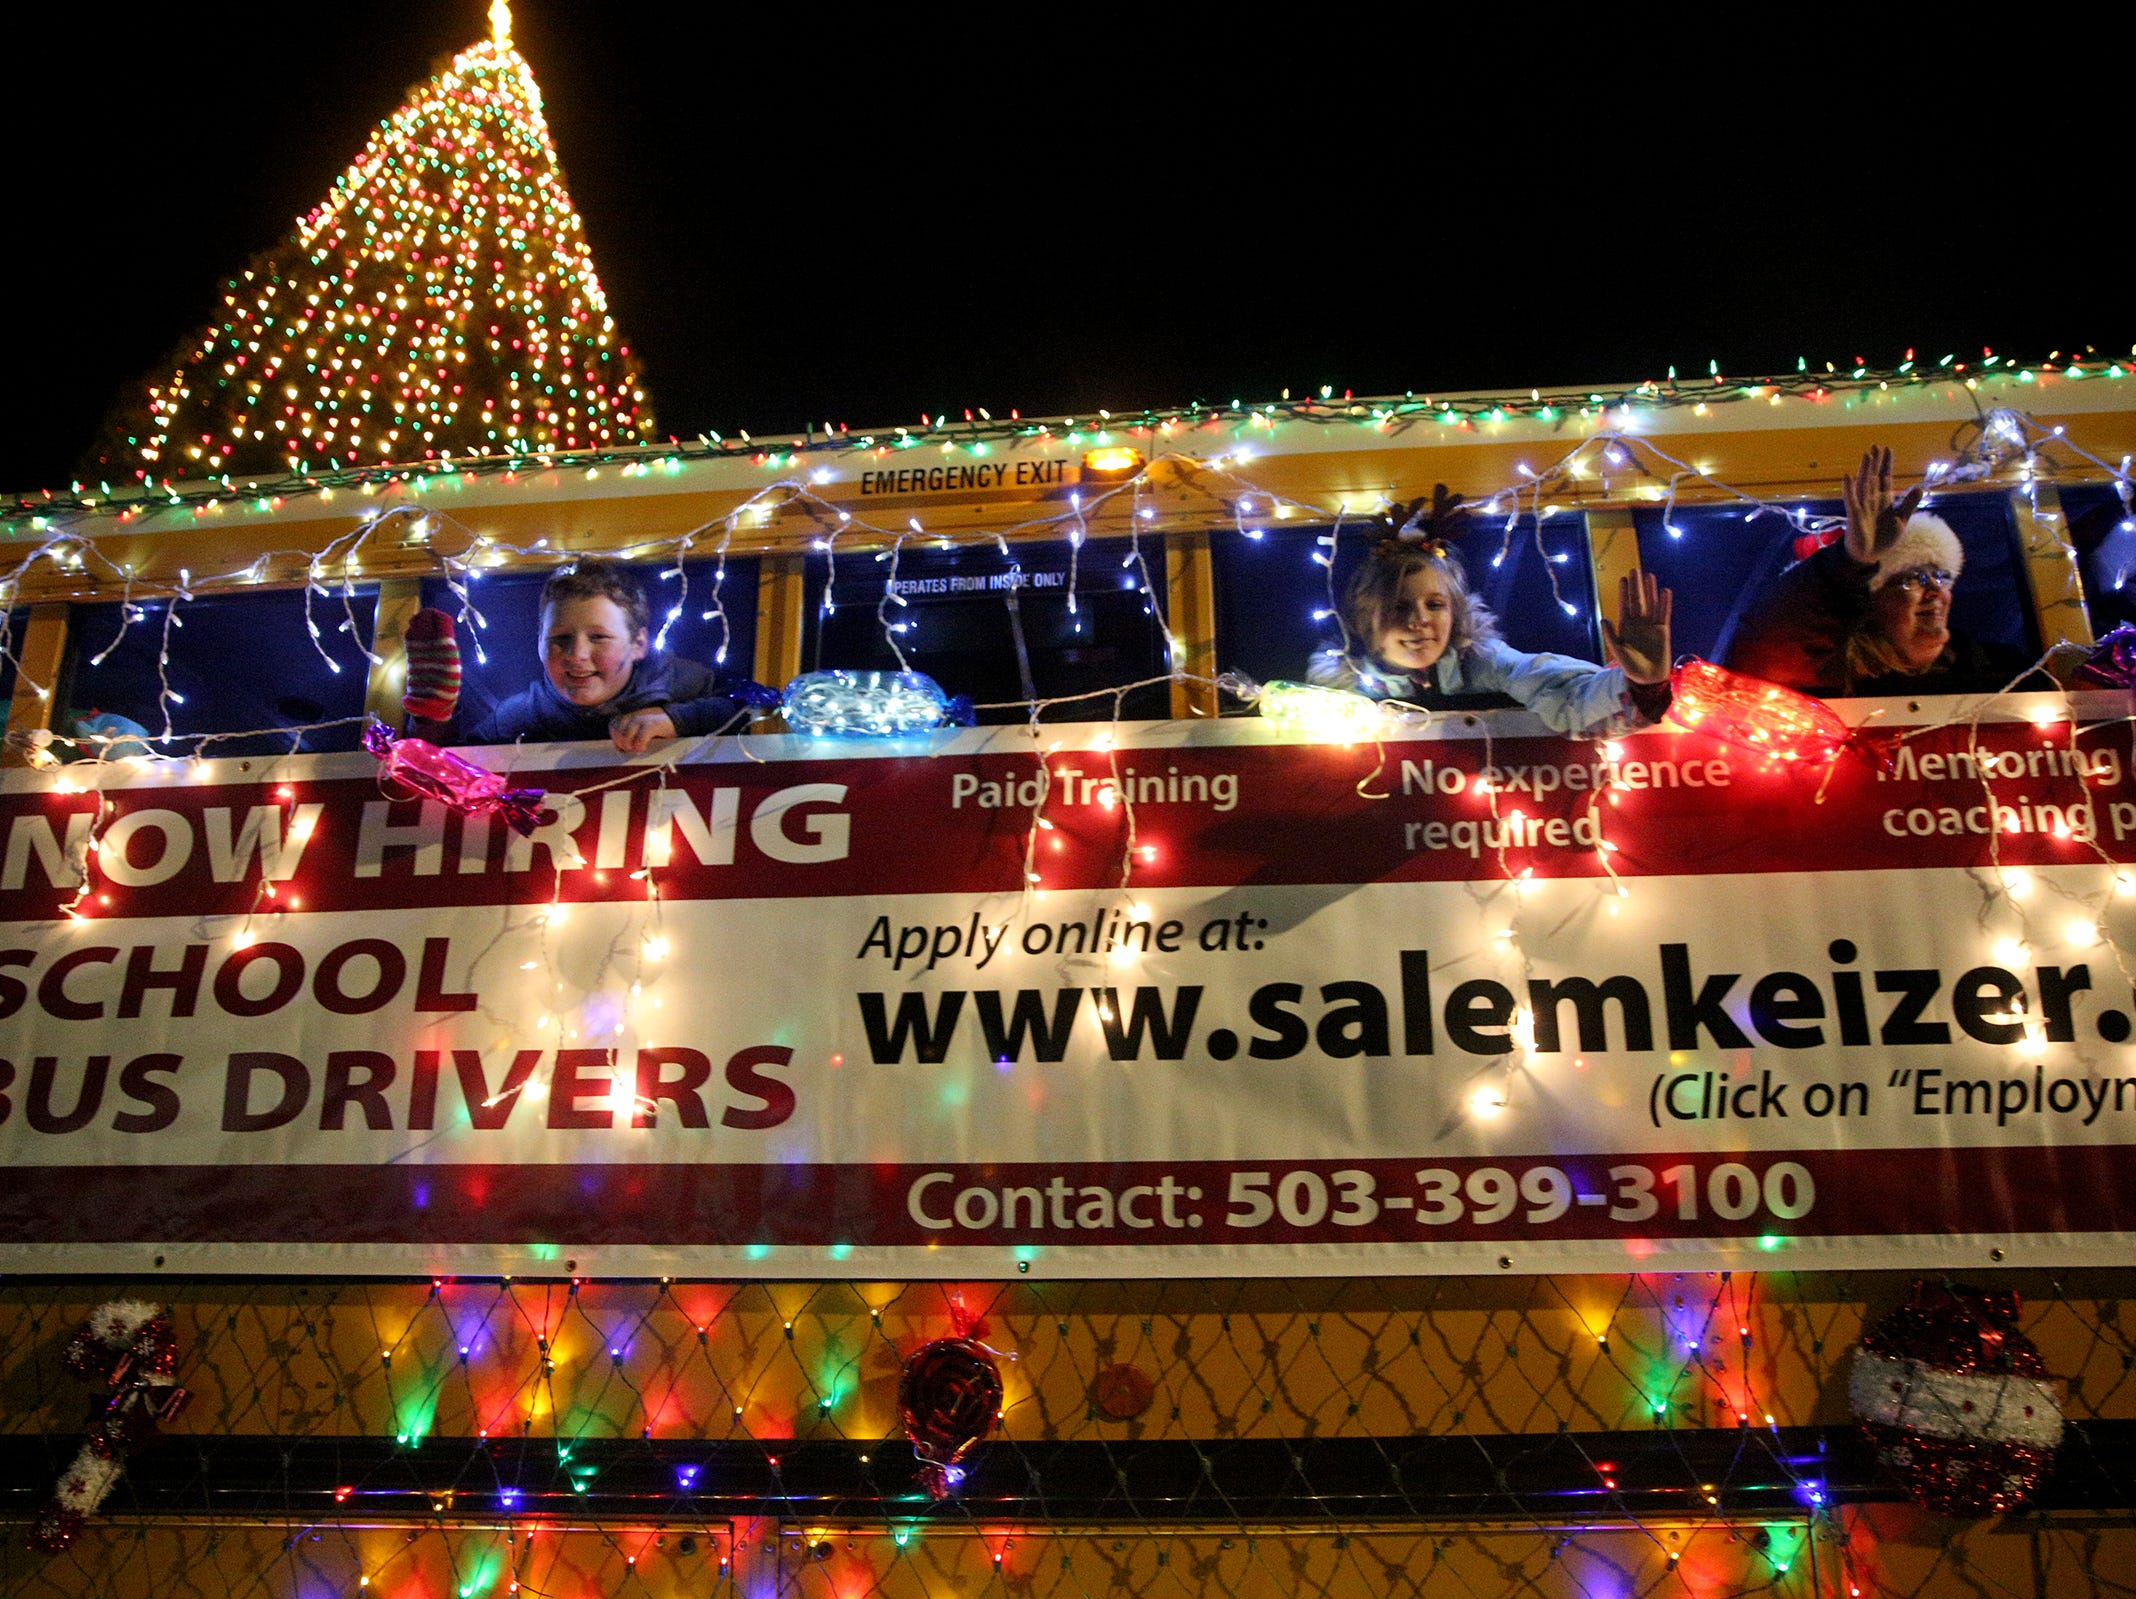 Salem-Keizer Public Schools showcases their lit-up school bus during the Keizer Holiday Lights Parade in Keizer on Saturday, Dec. 8, 2018.